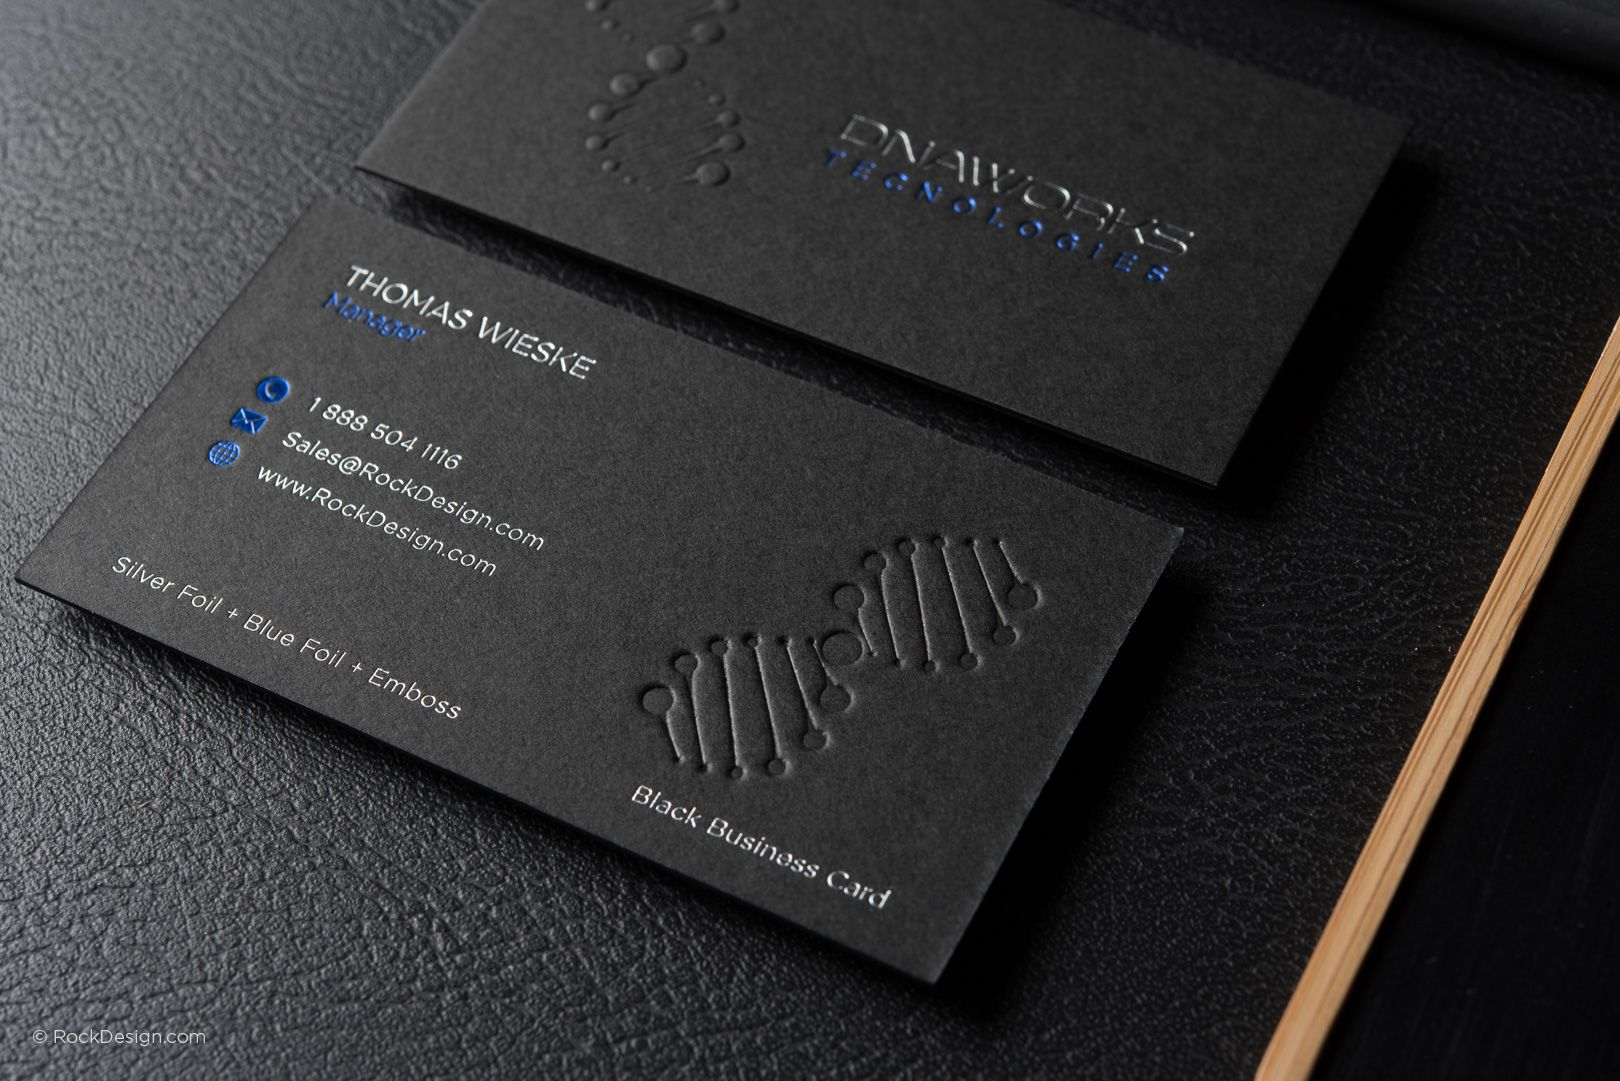 Modern Professional Black Business Card Template With Foil Dna Works Rockdesign Luxury